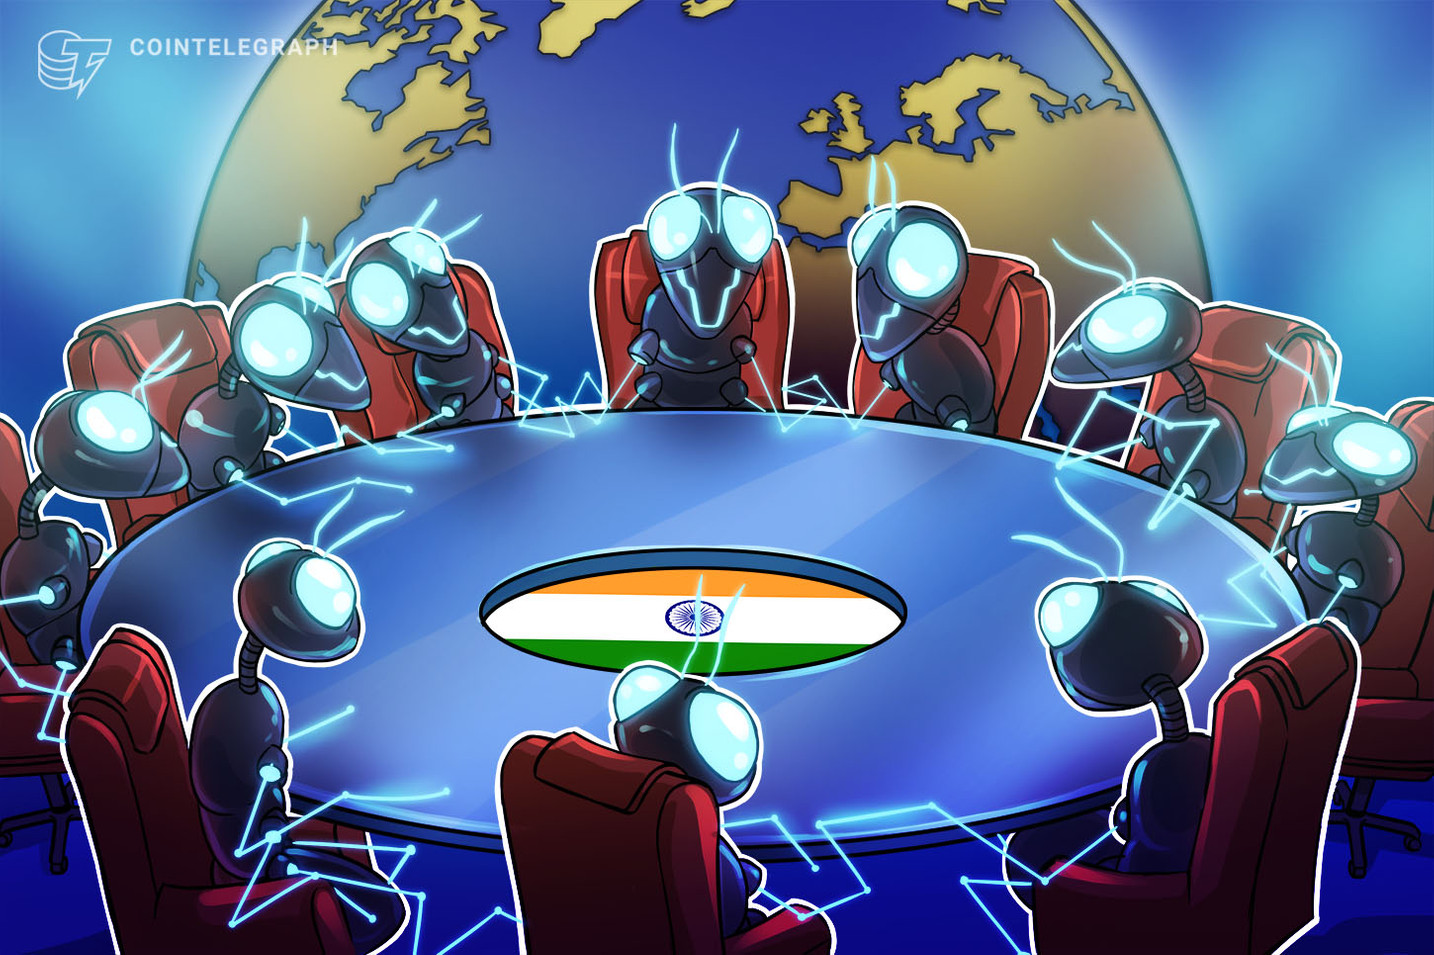 India's Kerala Blockchain Academy Partners with R3 for Dev Education